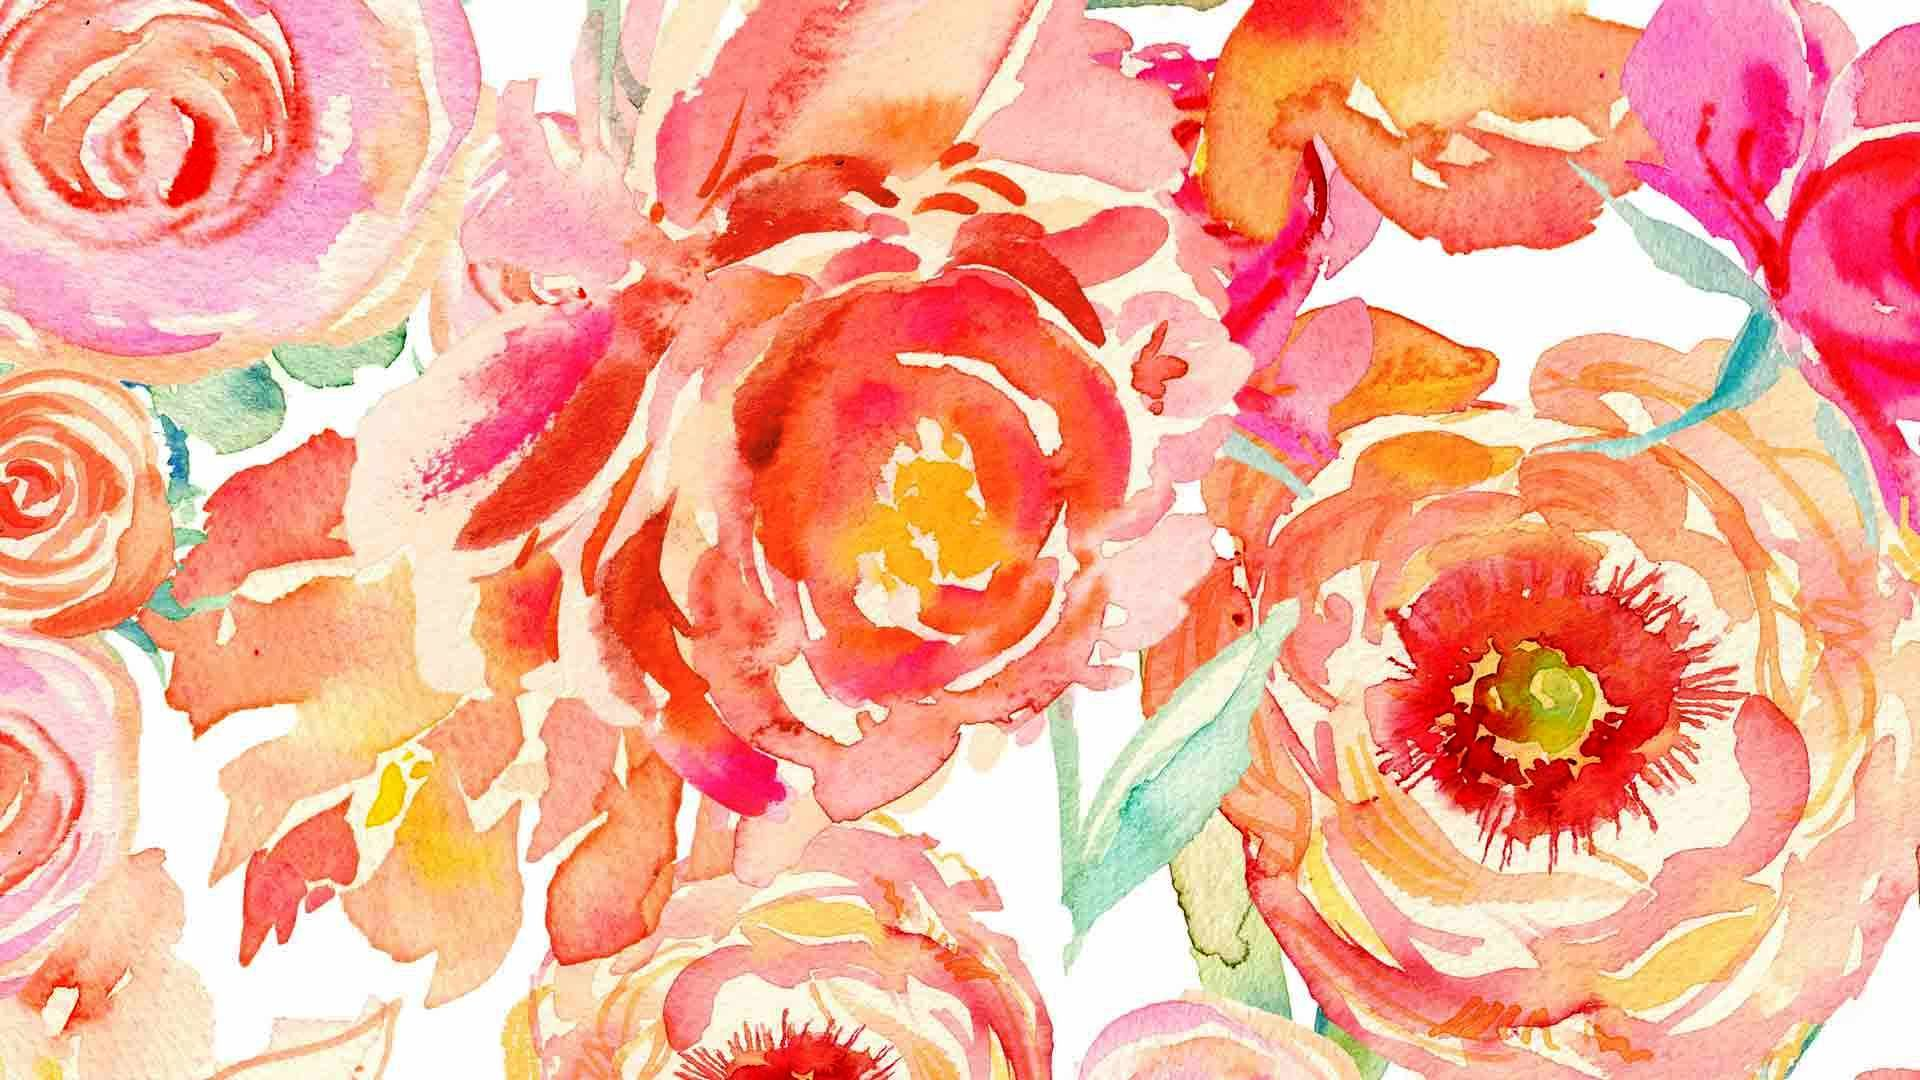 Watercolor wallpaper image by Casey Pantalone on GRAPHICS